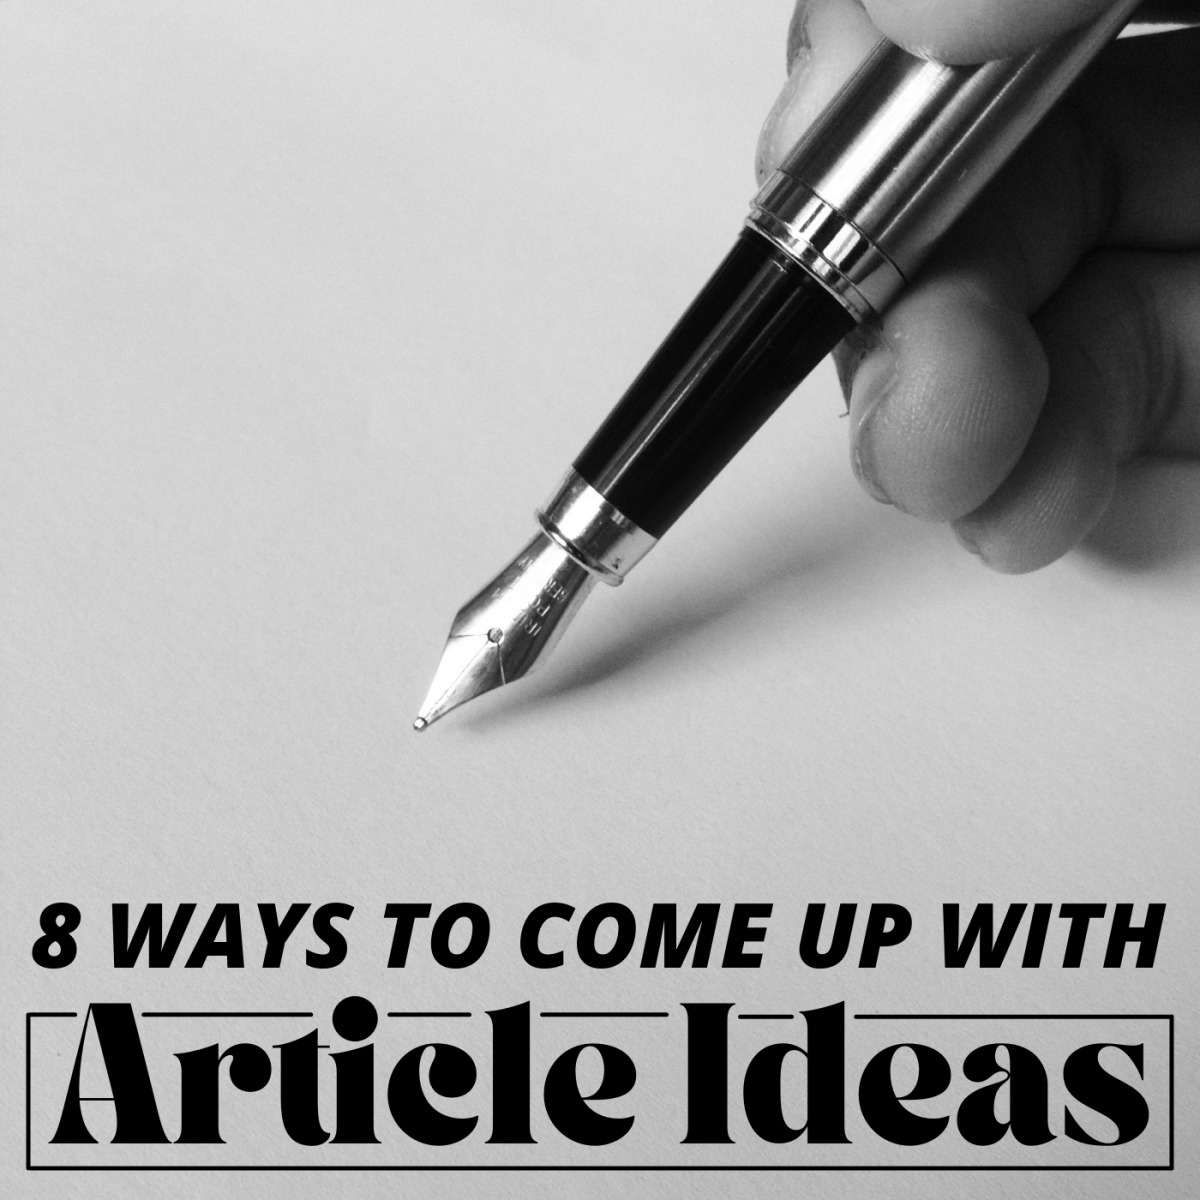 You need the perfect topic to write an article. Sometimes brainstorming one can be challenging.